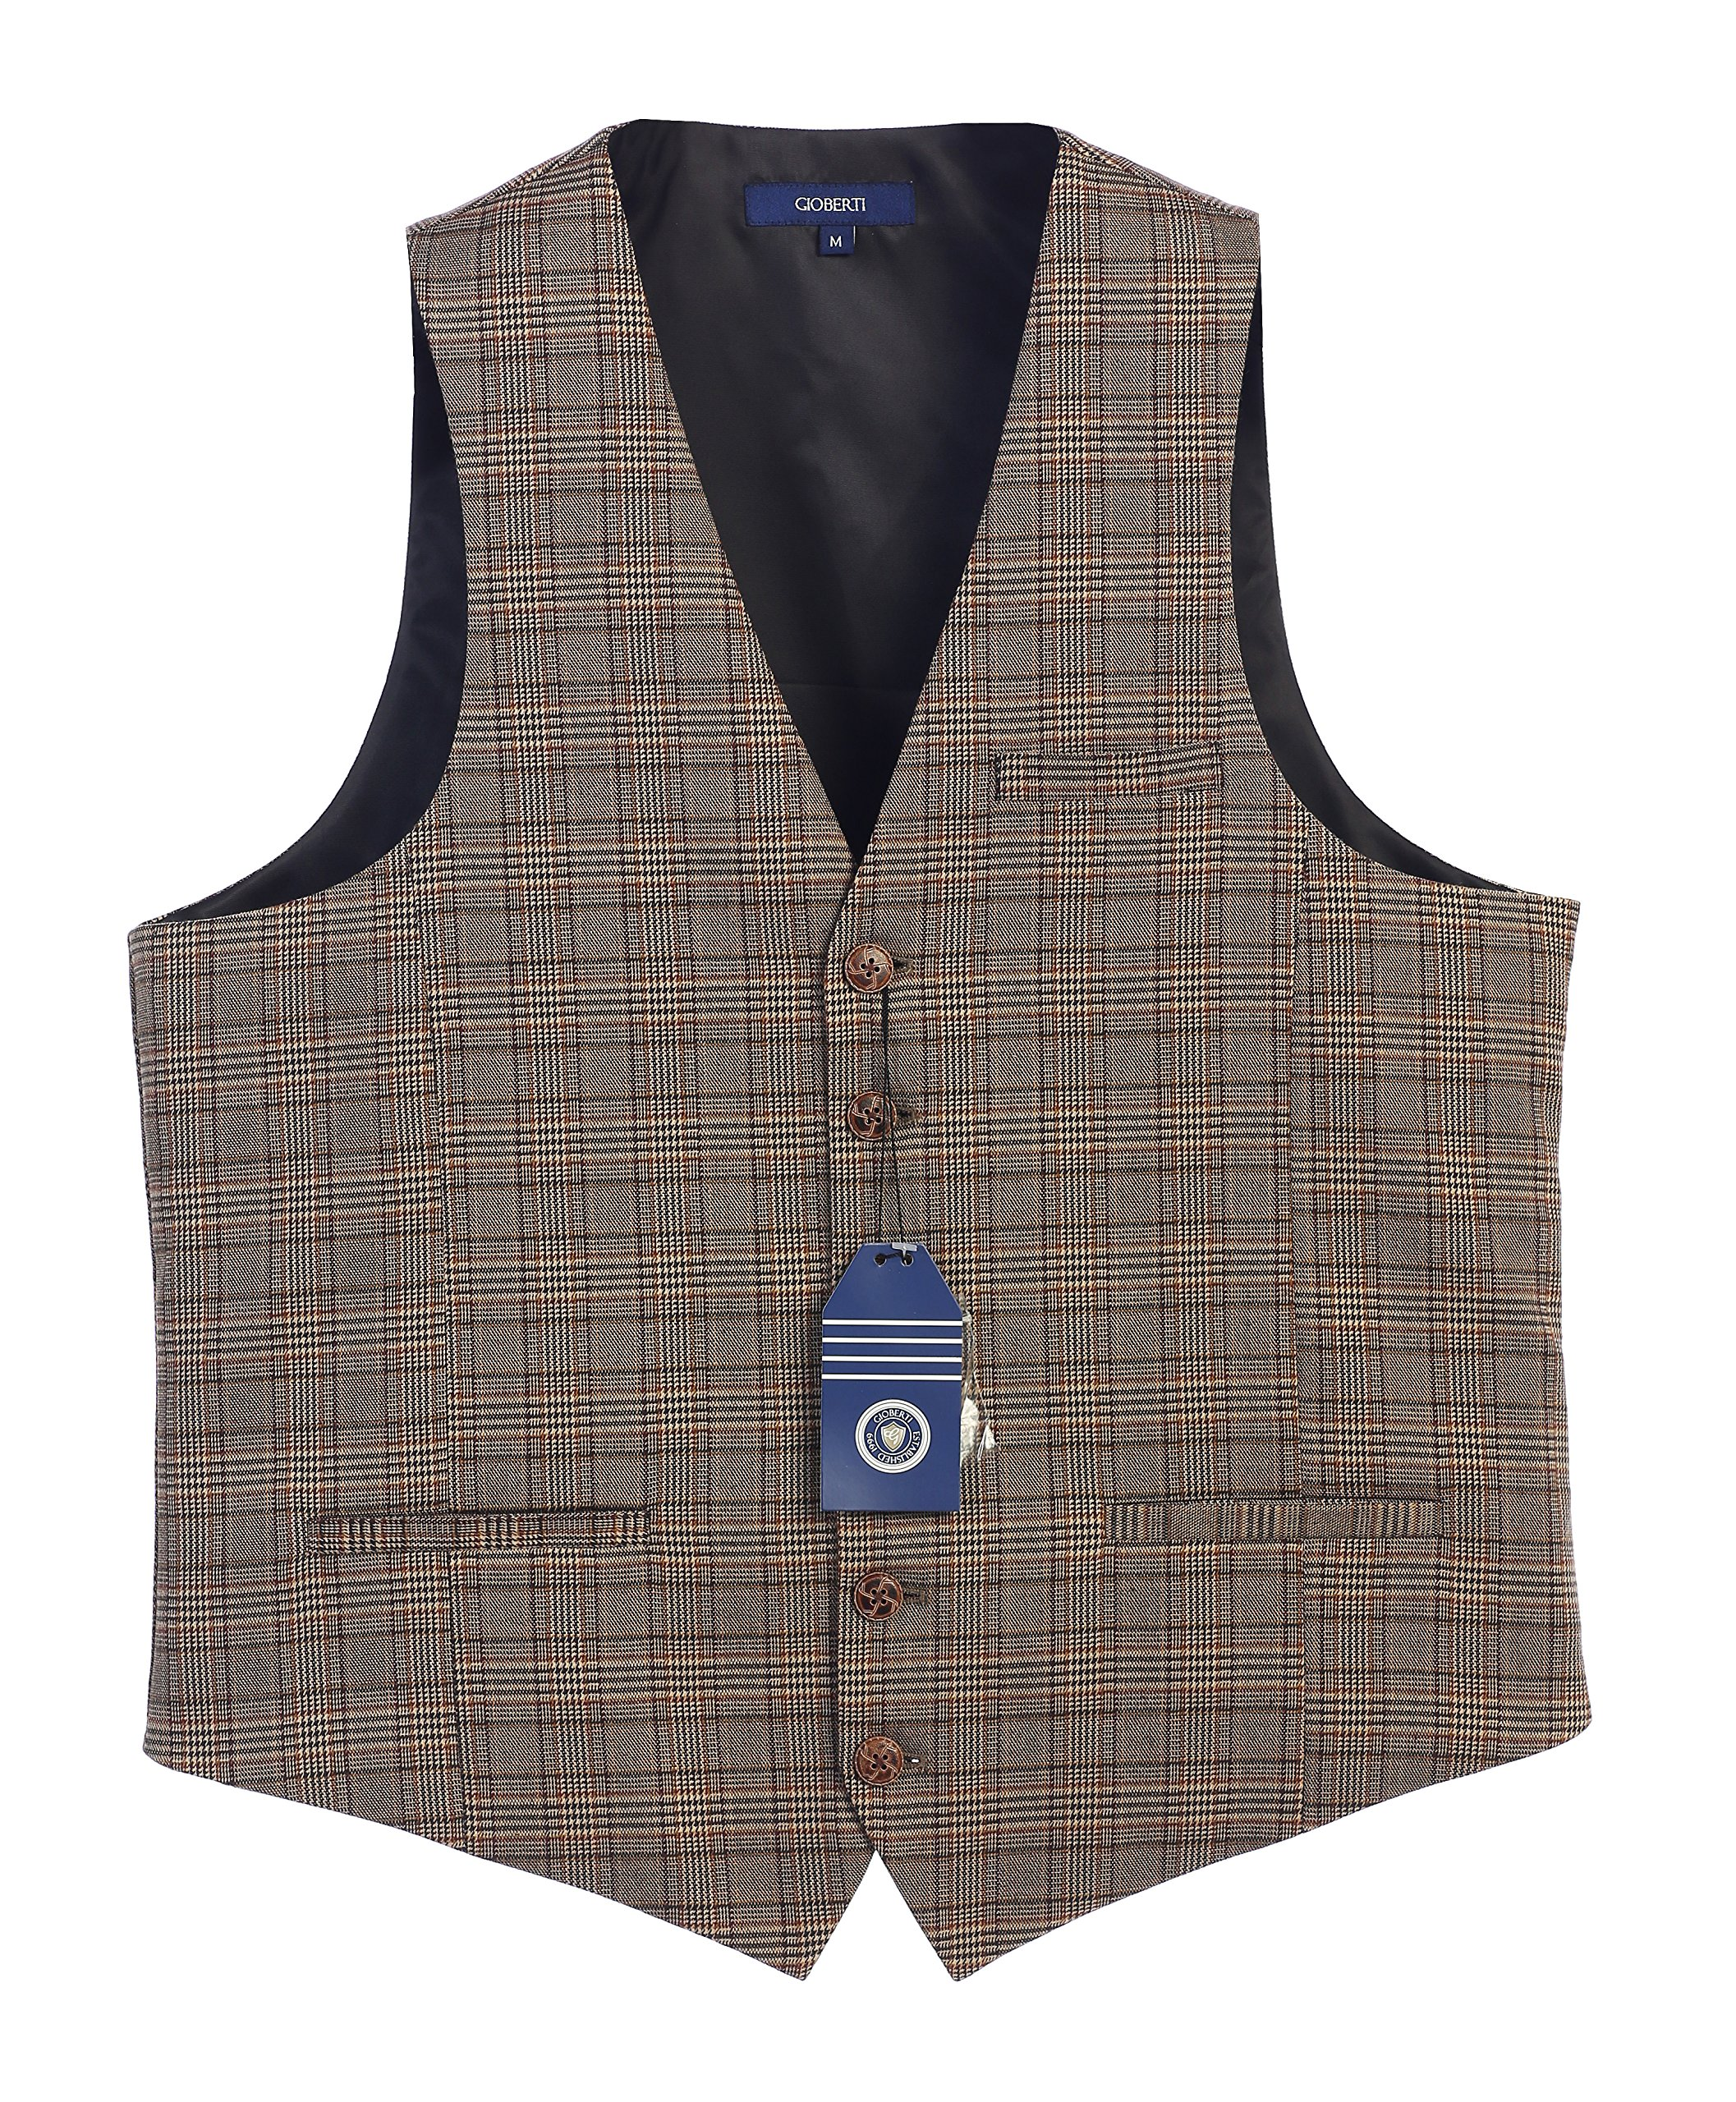 Gioberti Men's 6 Button Custom Formal Tweed Vest, Checkered Brown, X Large